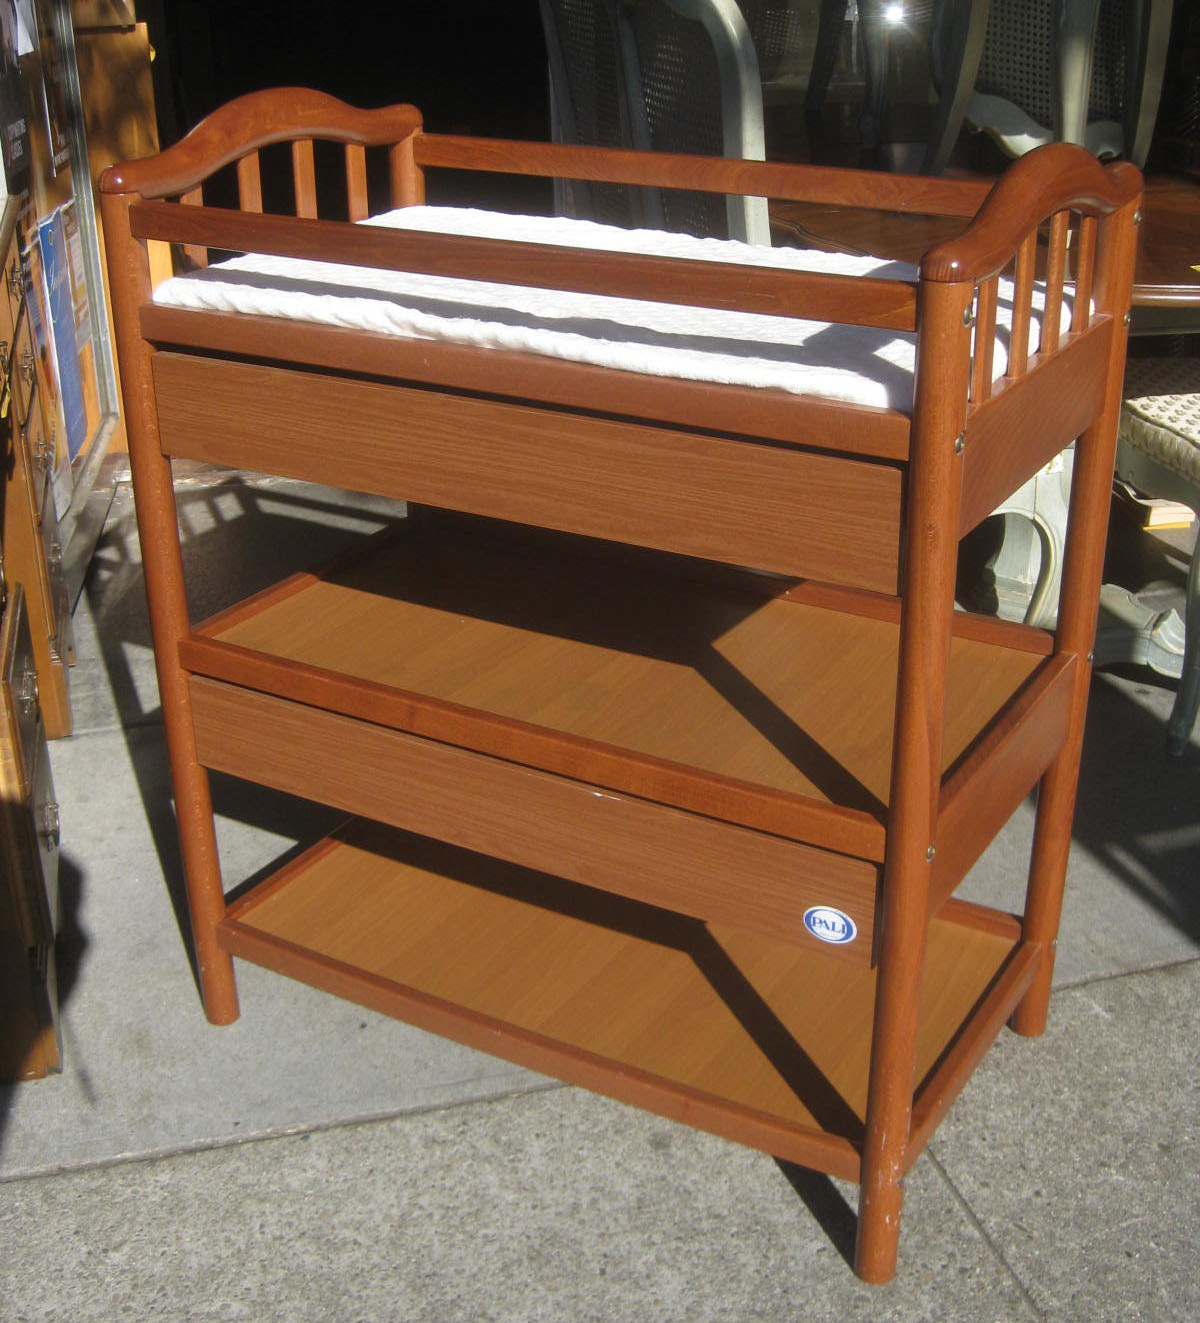 Marvelous SOLD   Pali Changing Table   $60